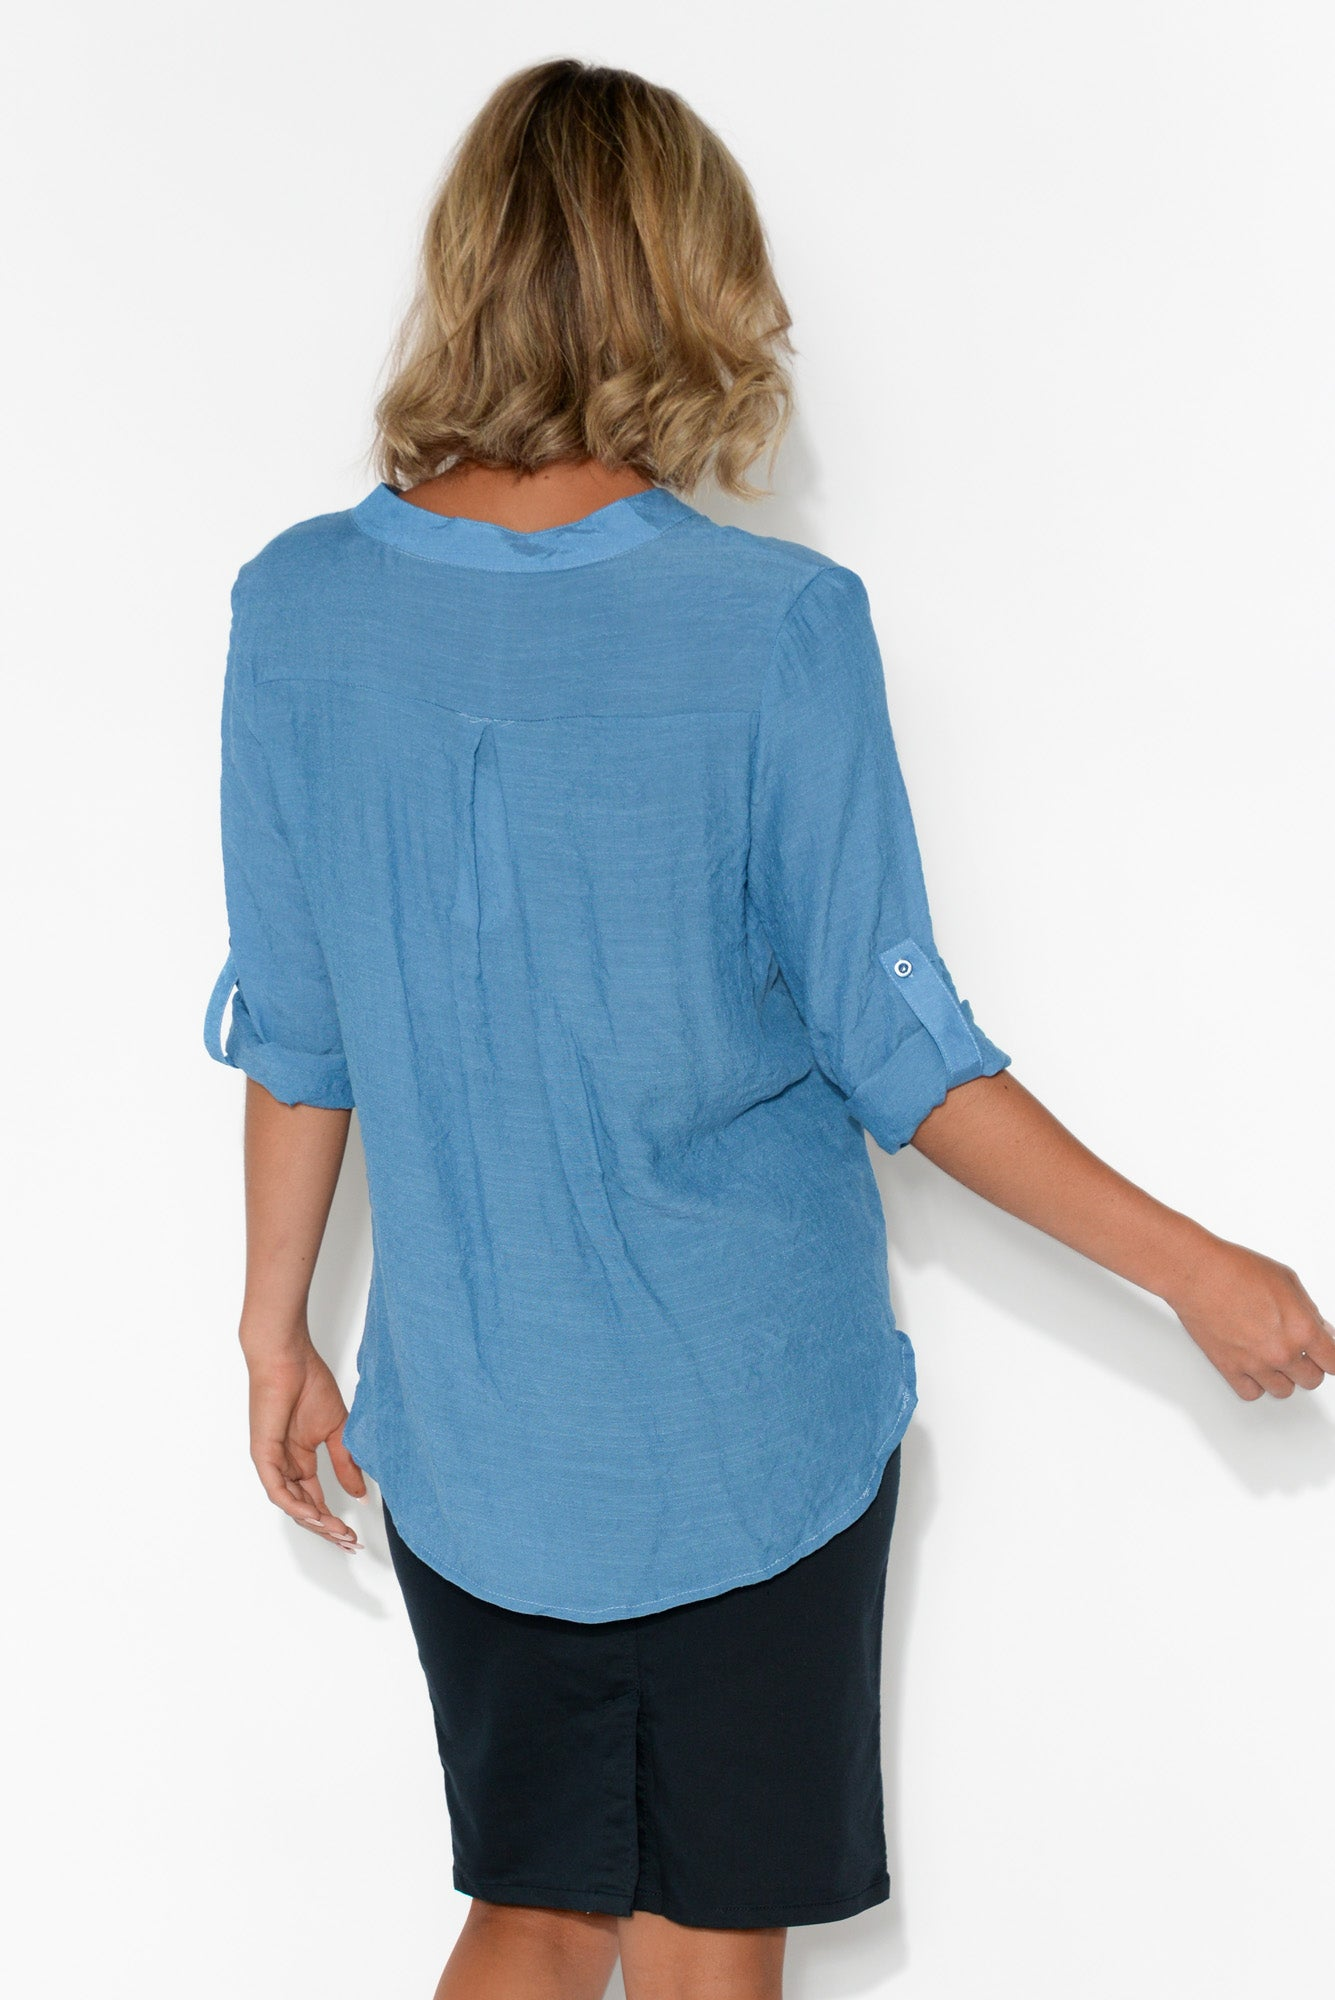 Cadence Blue Wrap Top